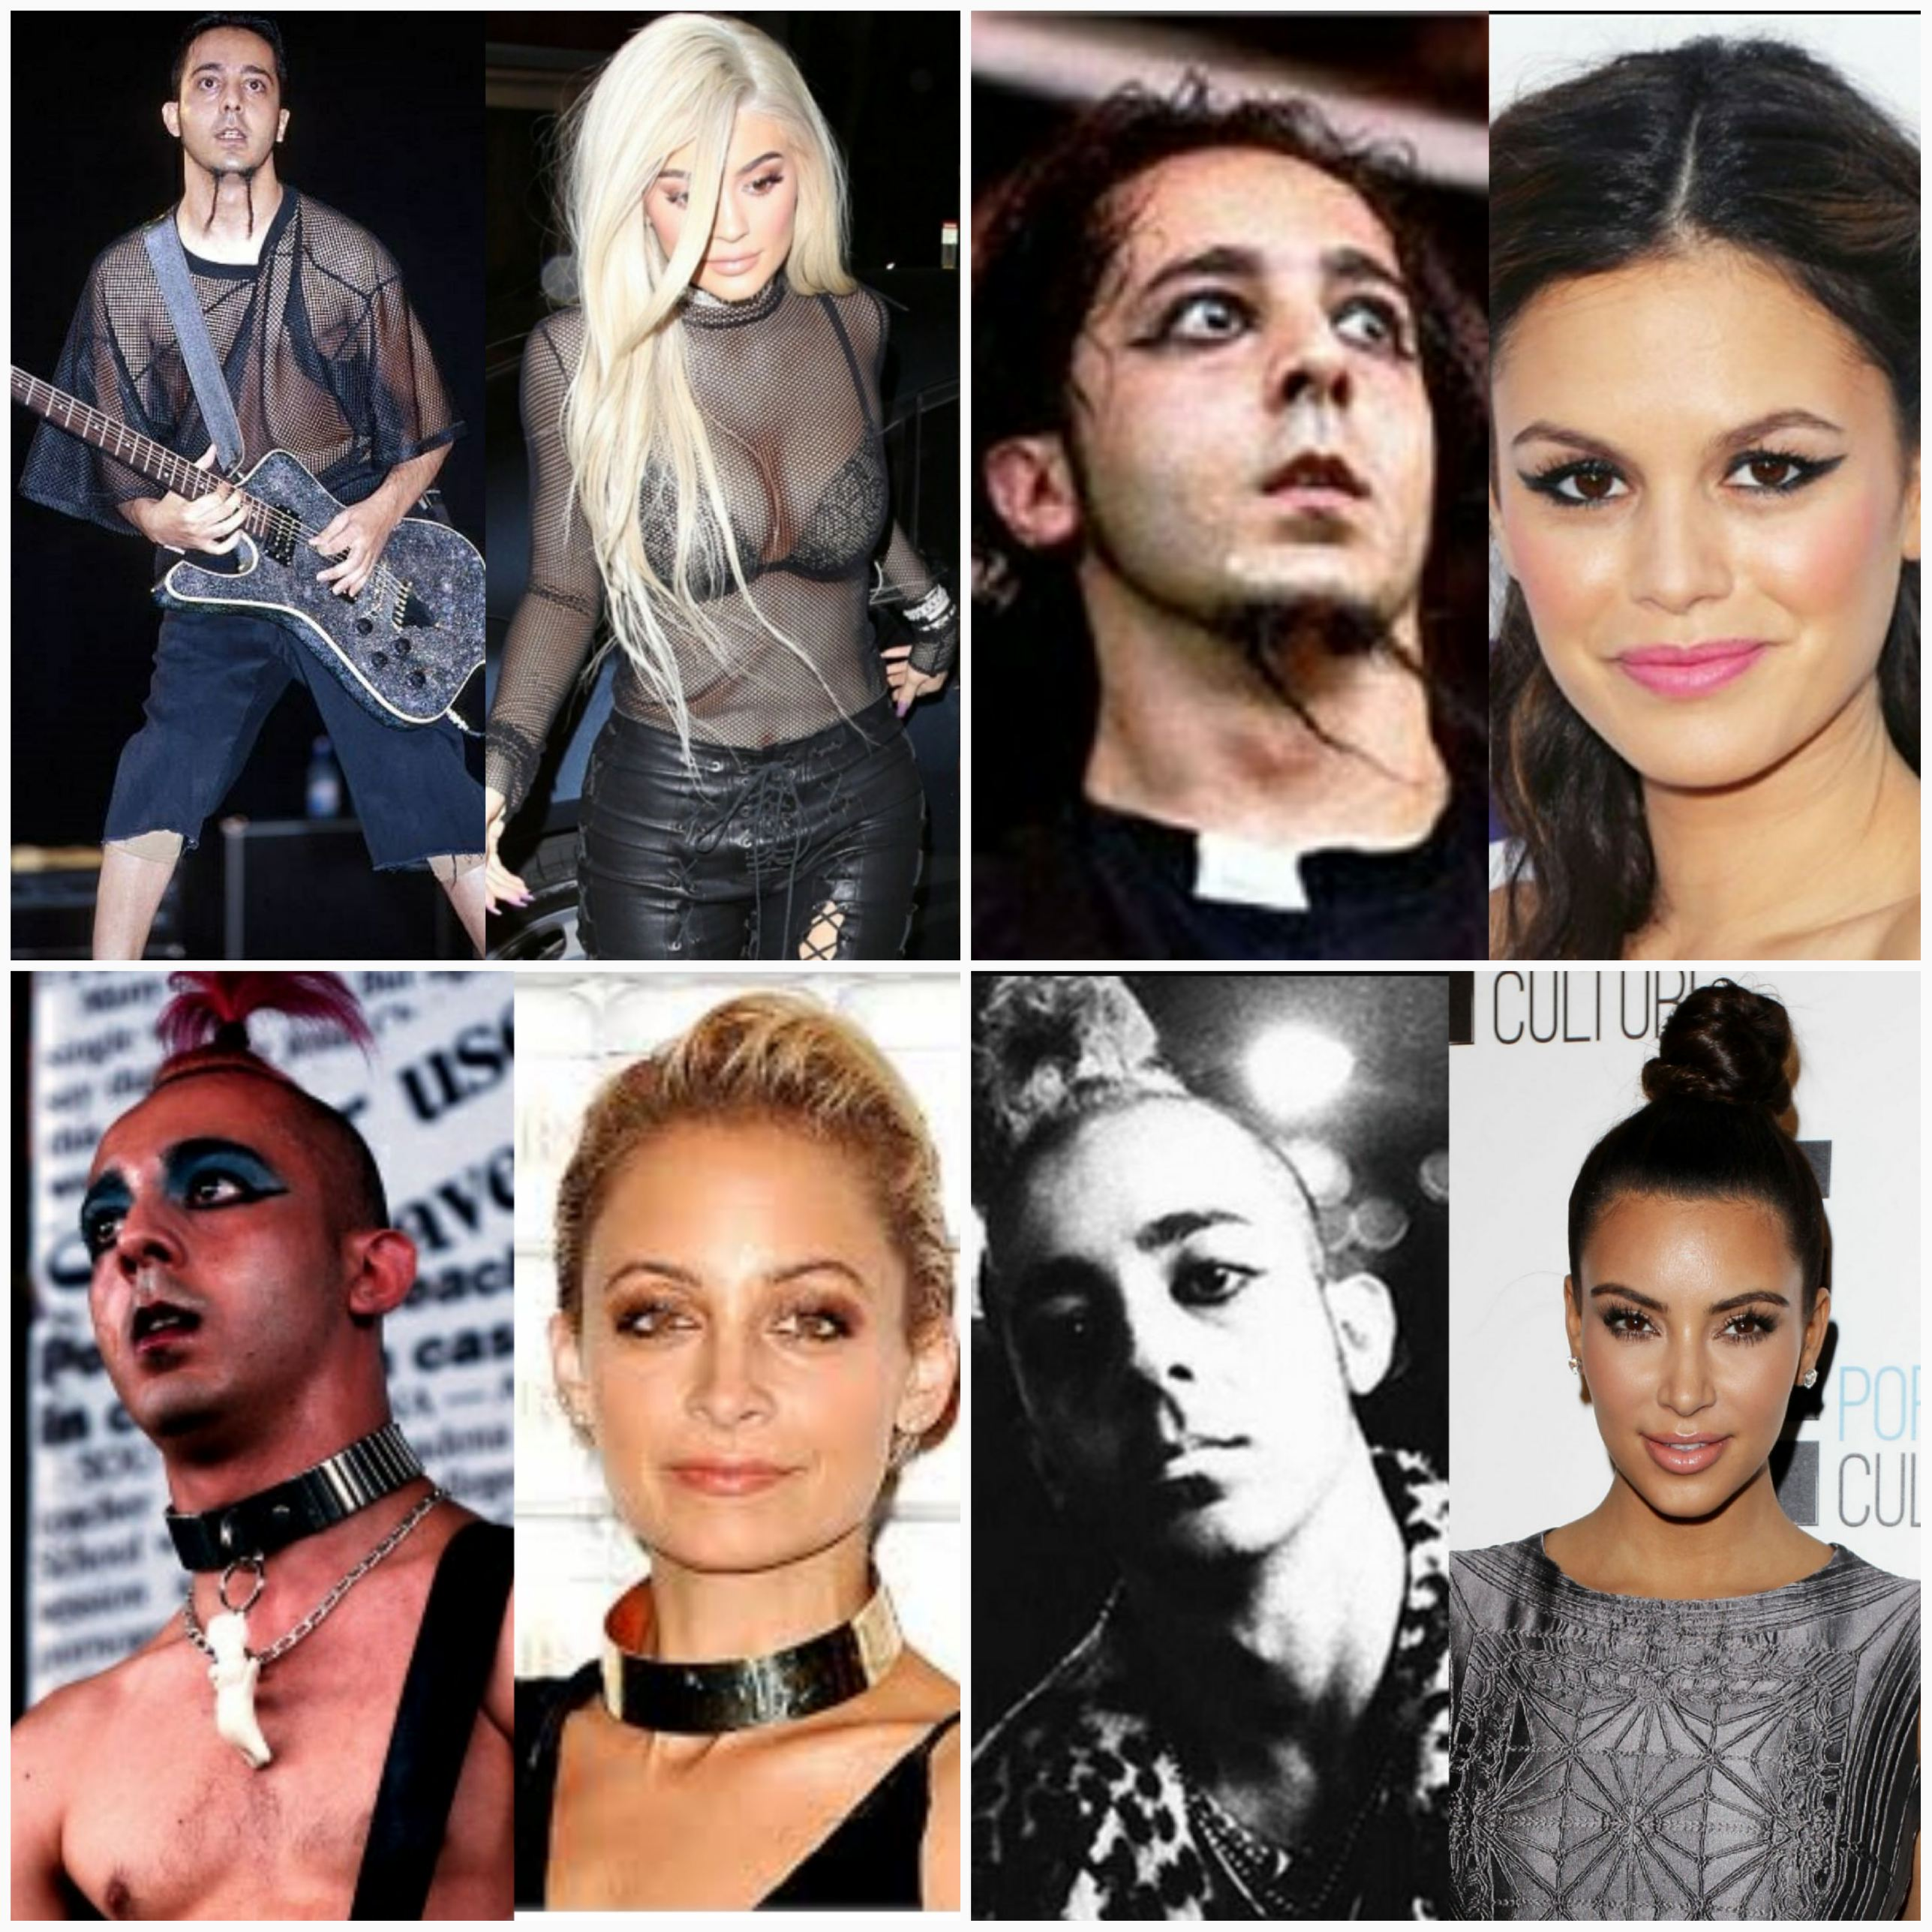 All modern female celebrity fashion was inspired by System of a Down guitarist Daron Malakian back in 1998